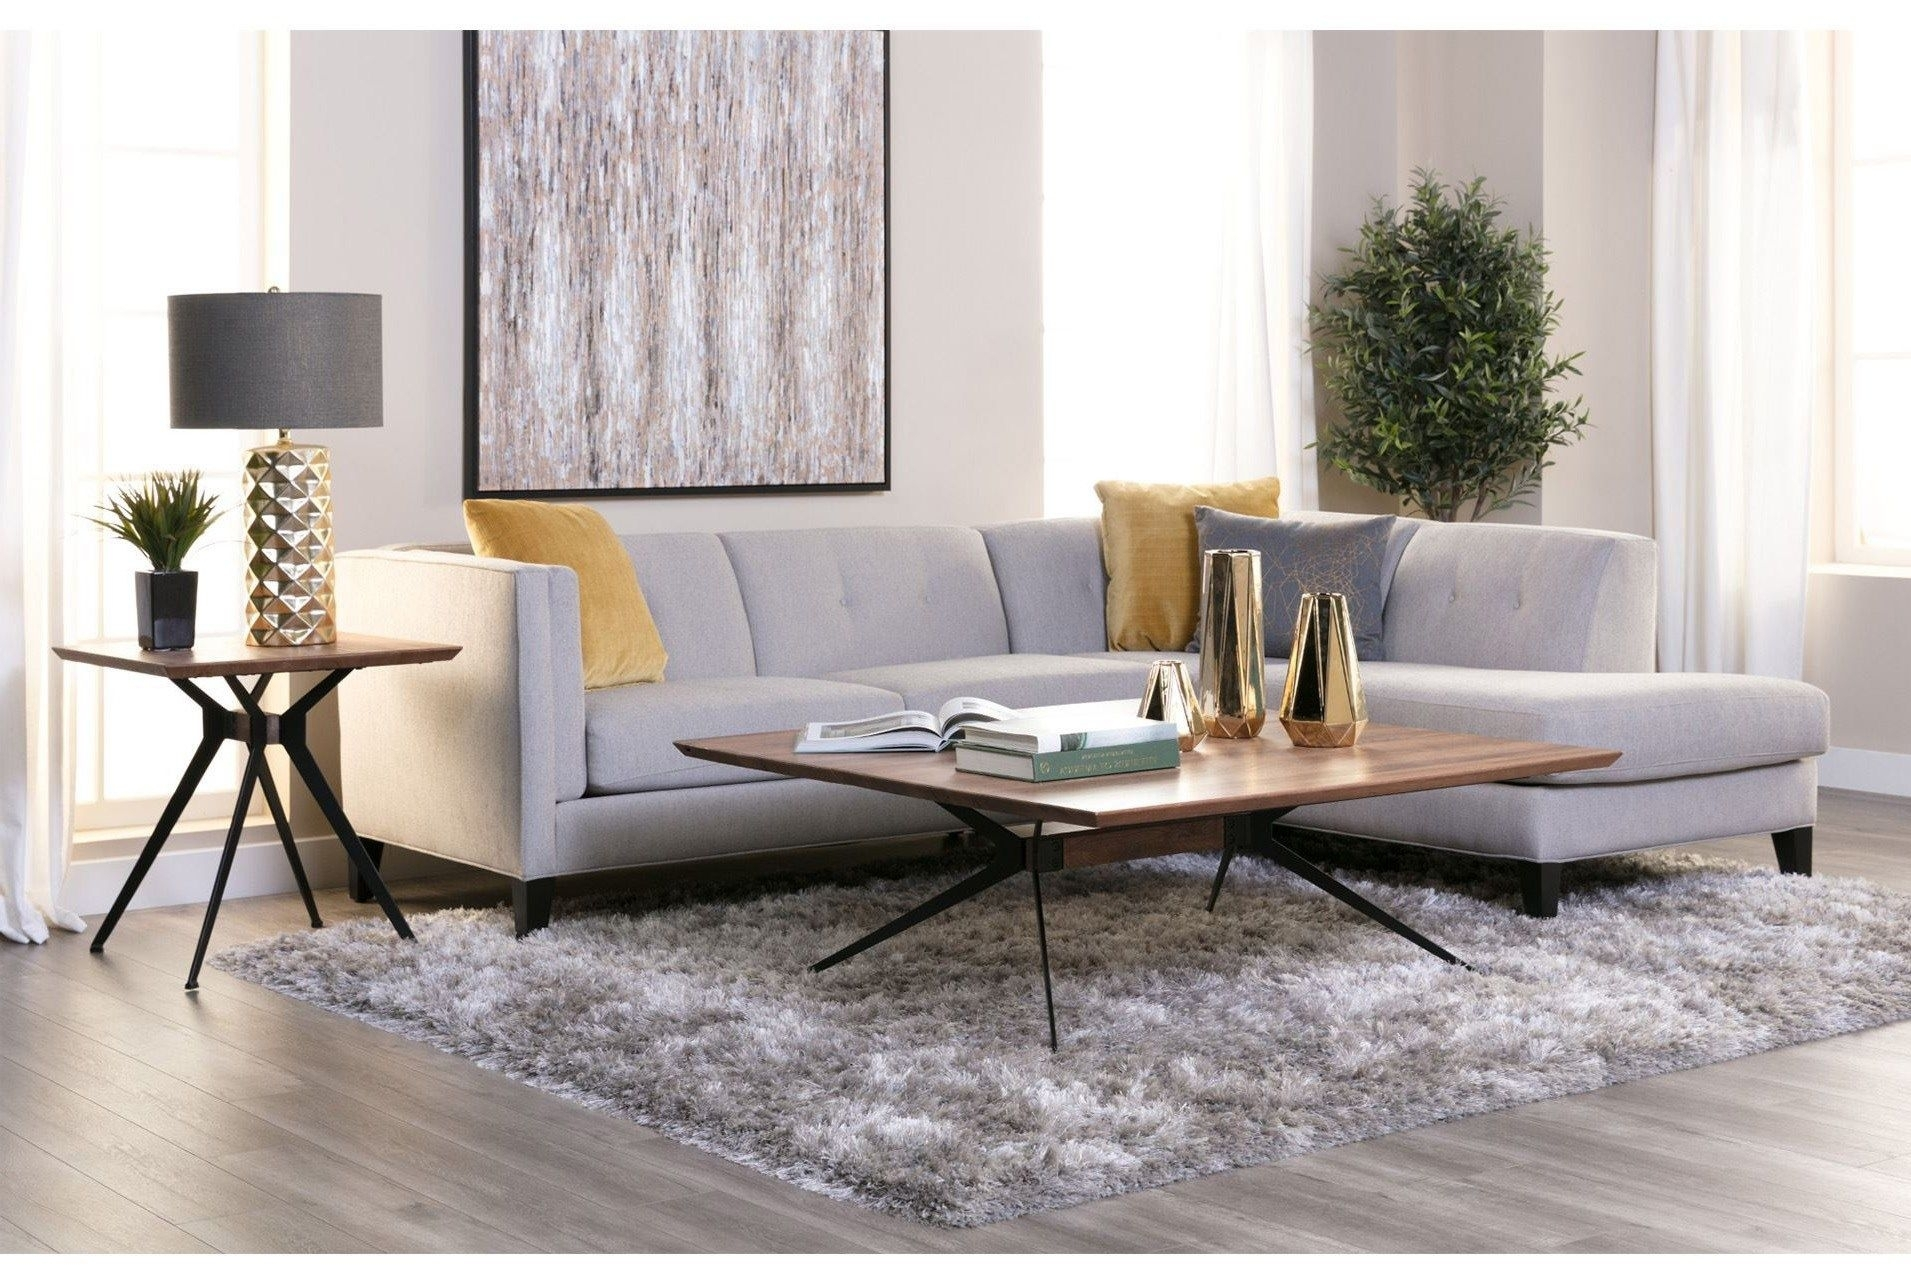 Avery 2 Piece Sectional W/raf Armless Chaise | Livingroom Pillow With Regard To Avery 2 Piece Sectionals With Laf Armless Chaise (View 4 of 25)